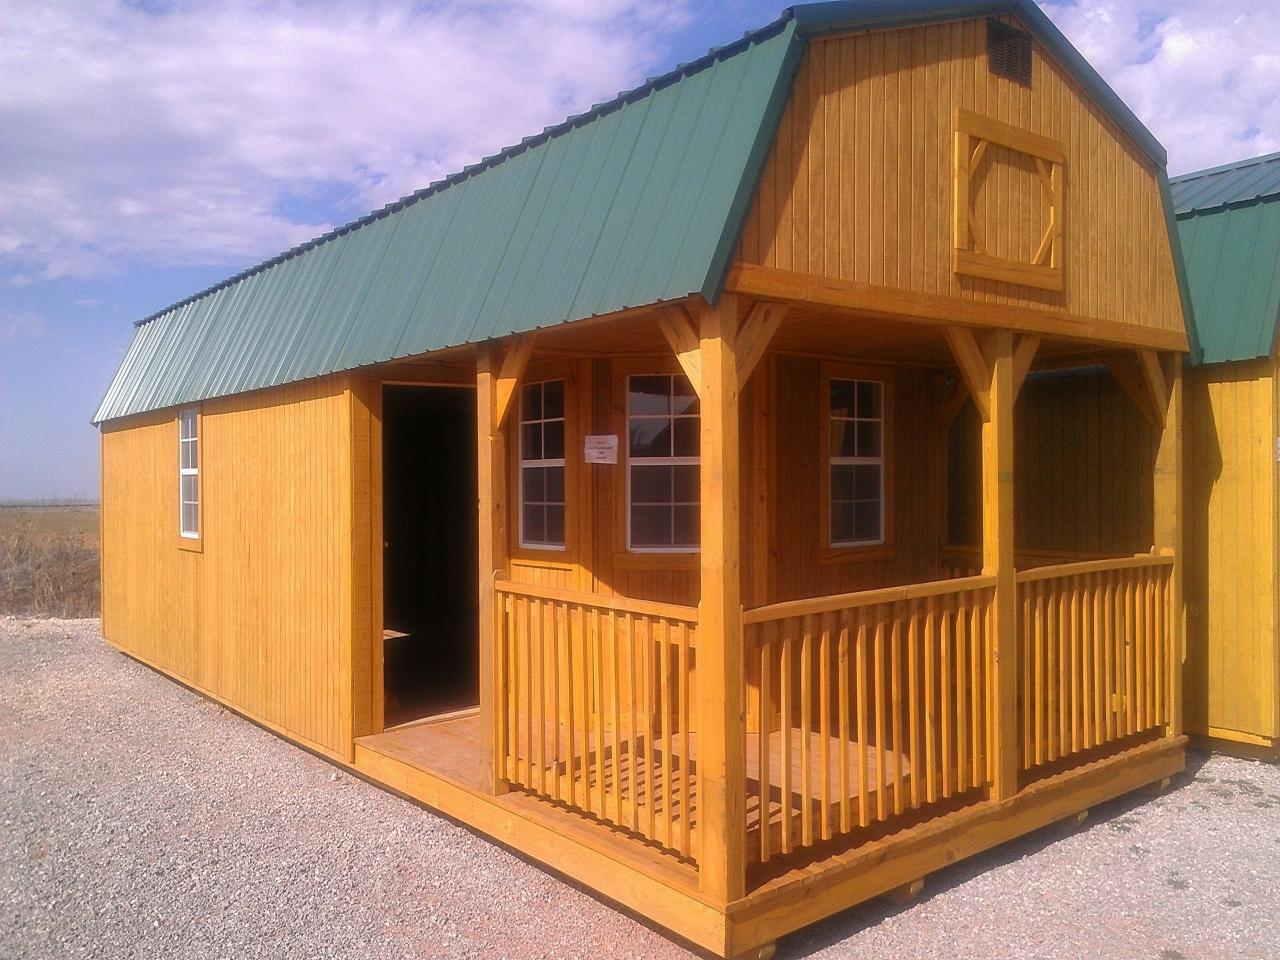 Tiny Victorian House Plans Small Cabins Tiny Houses Homes: Small Cabins Tiny Houses Tiny House On Wheels, Pre Made